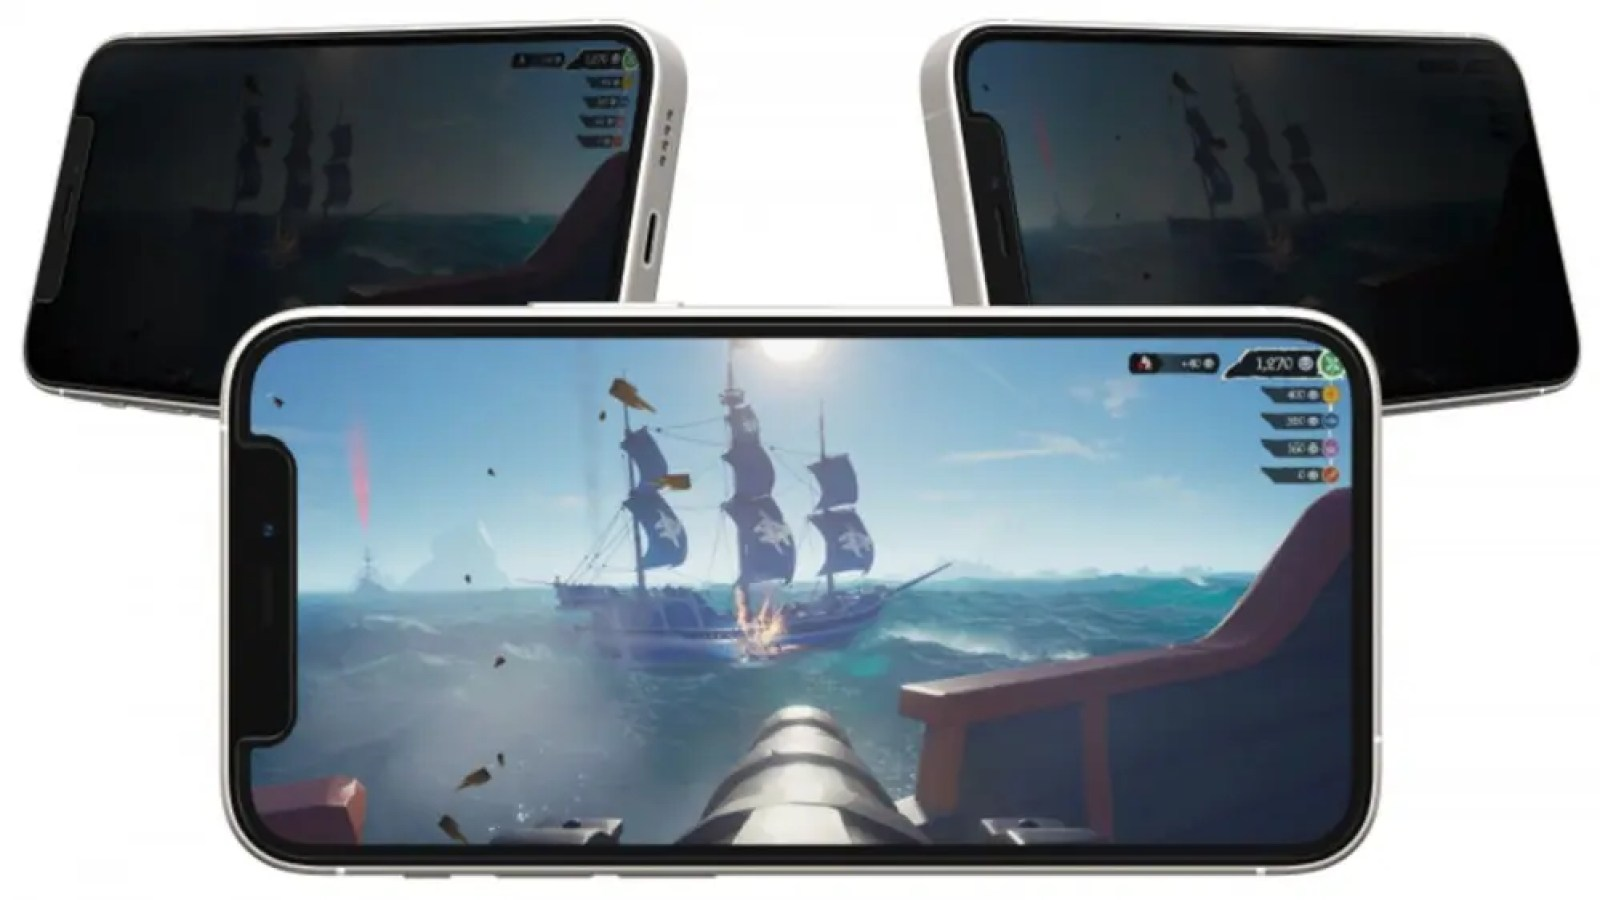 OtterBox Gaming Glass Privacy Guard head-on and from the side